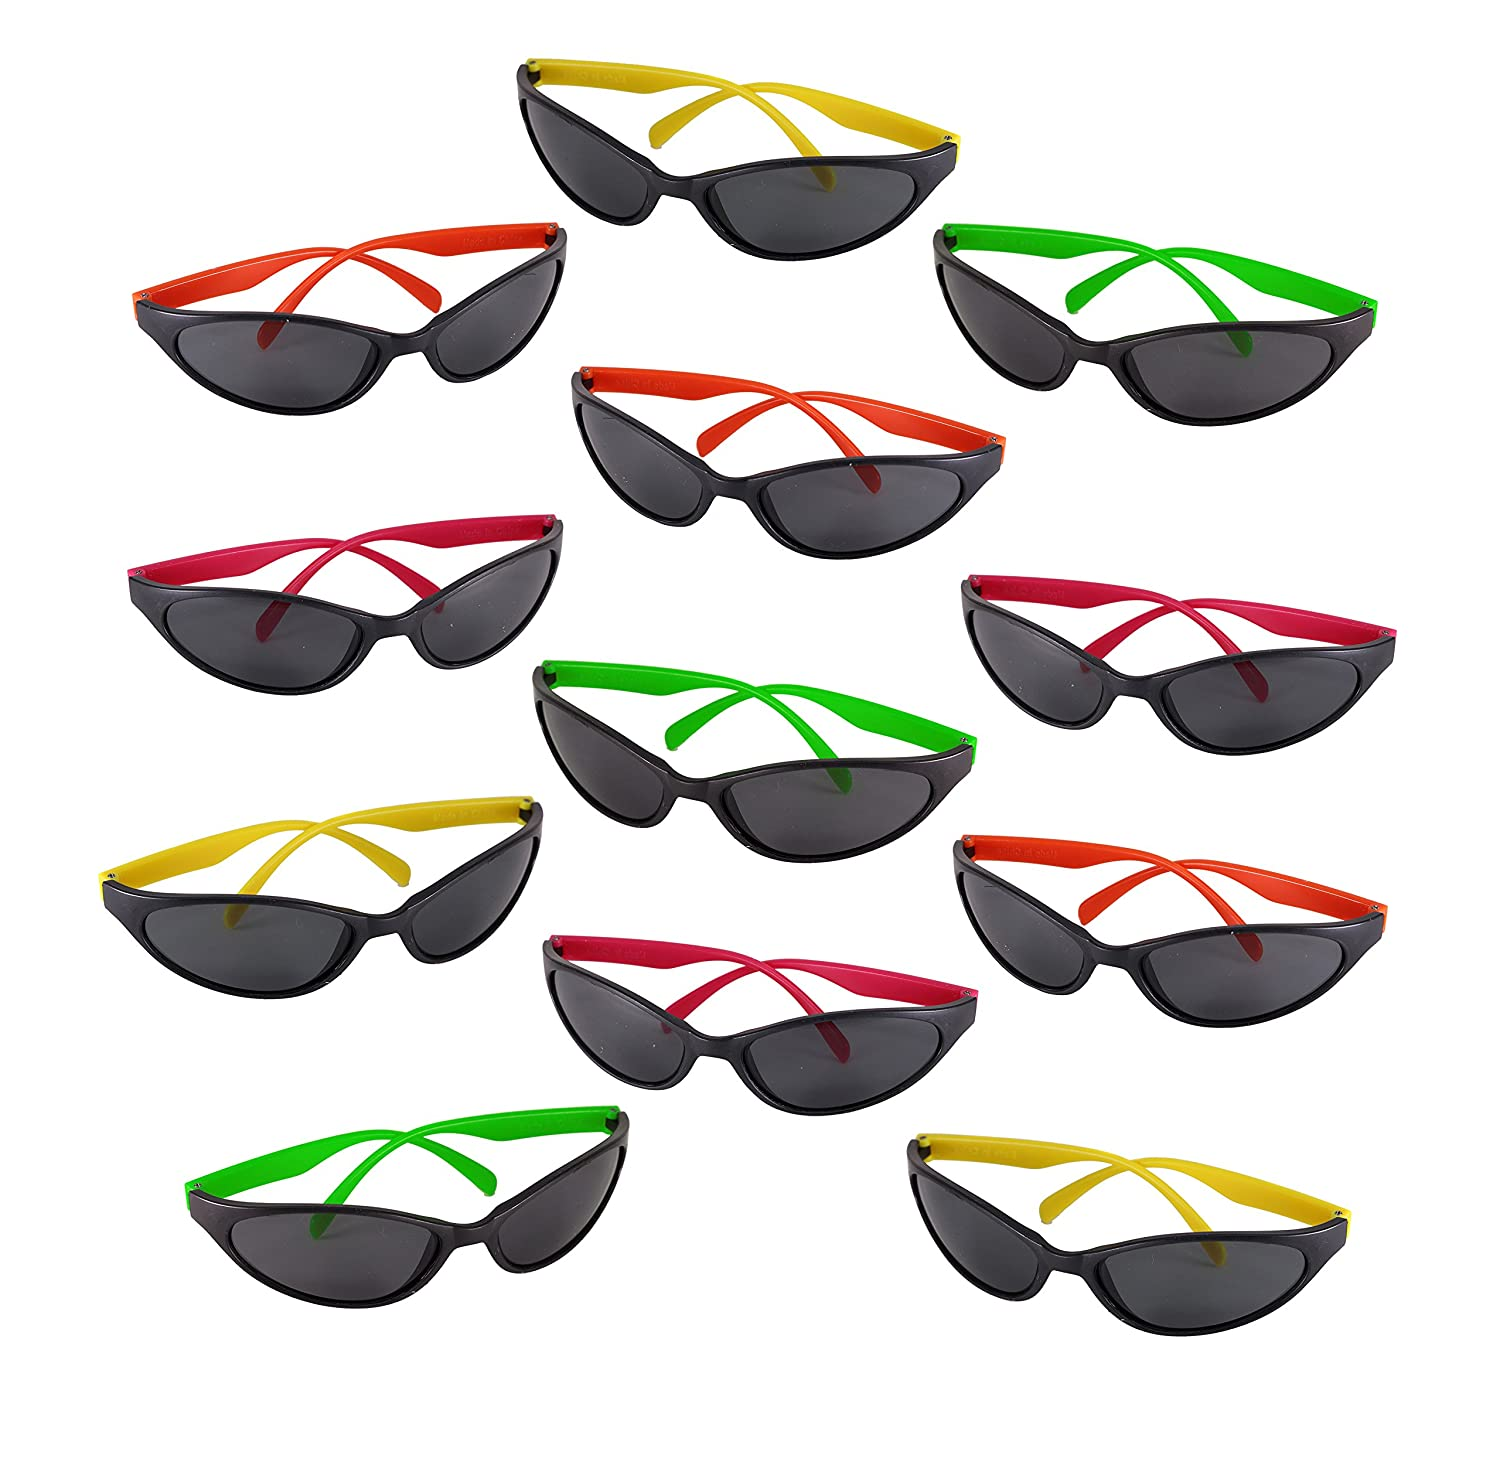 3a9fdaf613b Amazon.com  Smart N. Inc. Stylish Neon Color Sunglasses pack of 12. Great Party  Glasses for outdoor events.  Toys   Games